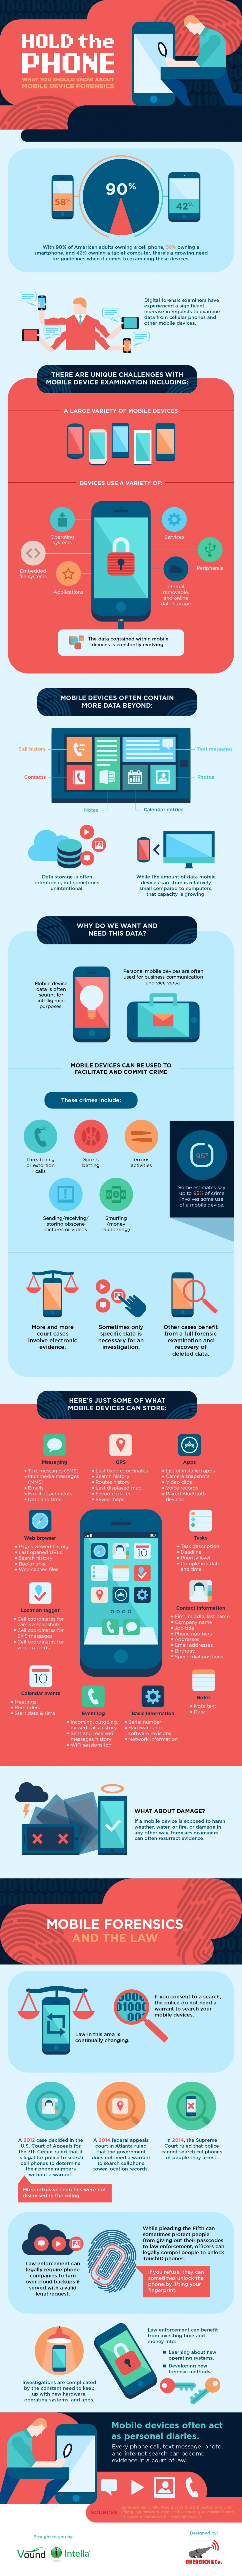 Hold the Phone: What You Should Know About Mobile Device Forensics Infographic